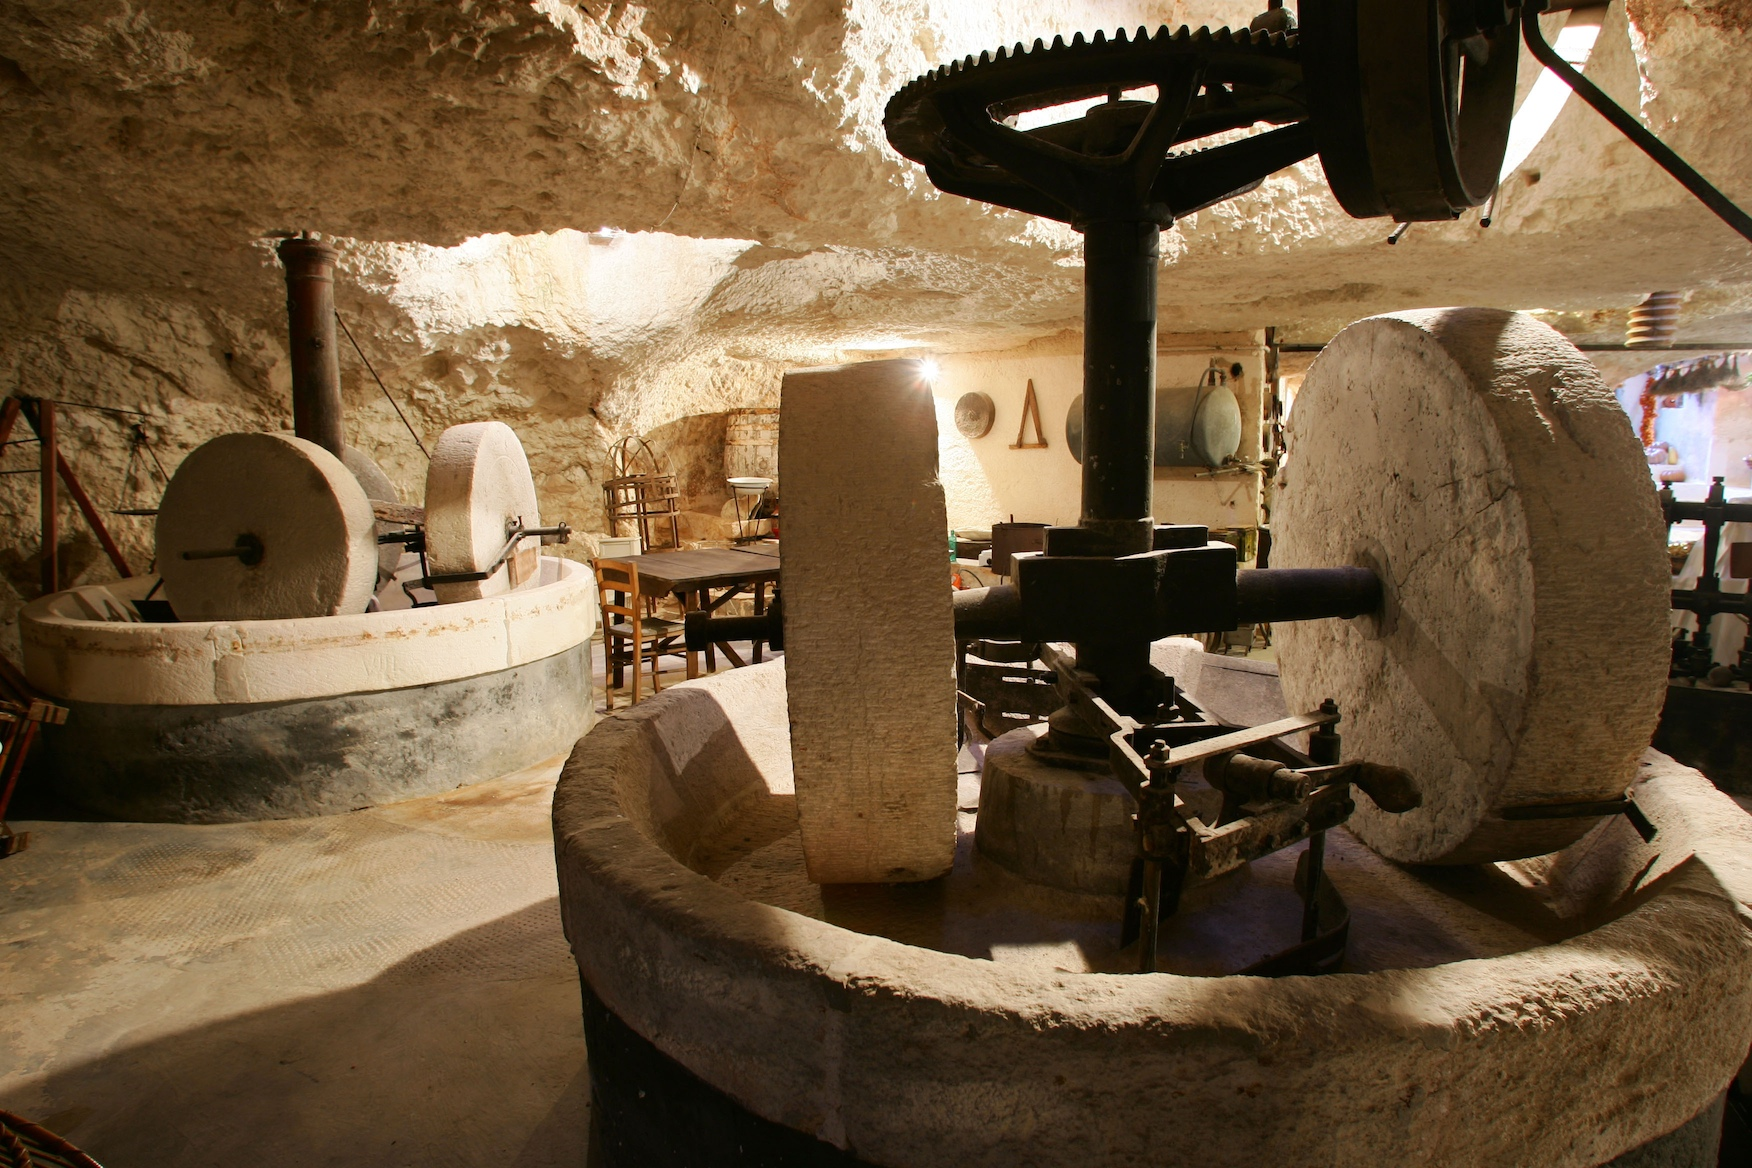 MASSERIA IL FRANTOIO, OSTUNI ( BRINDISI, APULIA, ITALY ) The white Masseria Il Frantoio stands in the countryside of Ostuni, only a few minutes by car from the seaside. We are in the heart of Apulia. In the photo:The hypogeum olive-press of the Frantoio in Ostuni. One of the most fascinating parts of this farm is the huge hypogeum olive-press, named after it. In this natural cave they used to produce olive oil. Almost all of the fortified farms of the Salento area were either built over or near huge underground cavities that man had adapted to his needs: here were placed millstones, presses and tanks.